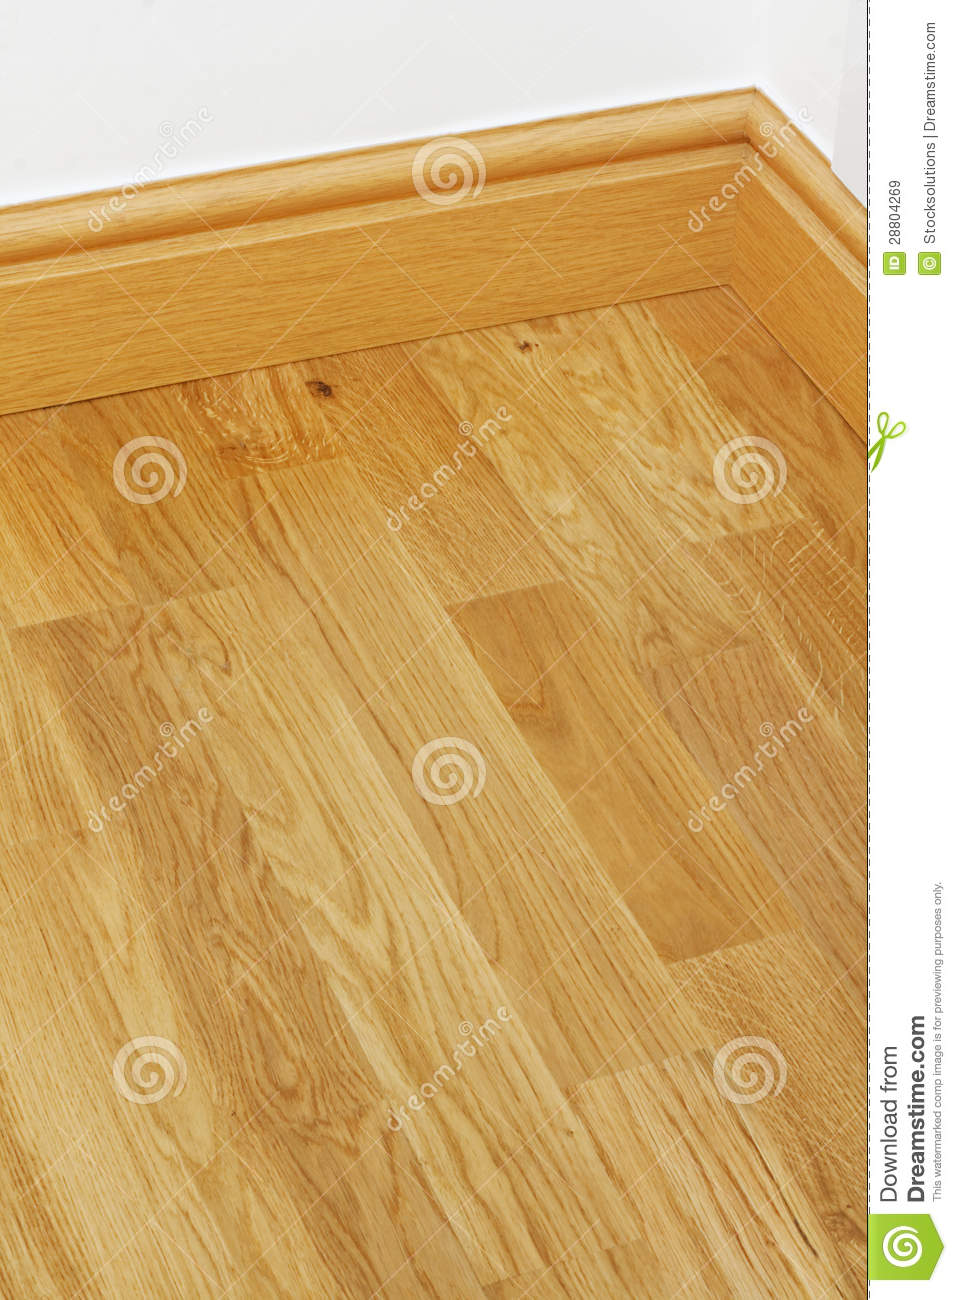 Vinyl Wooden Flooring Mdf Skirting Boards Stock Image